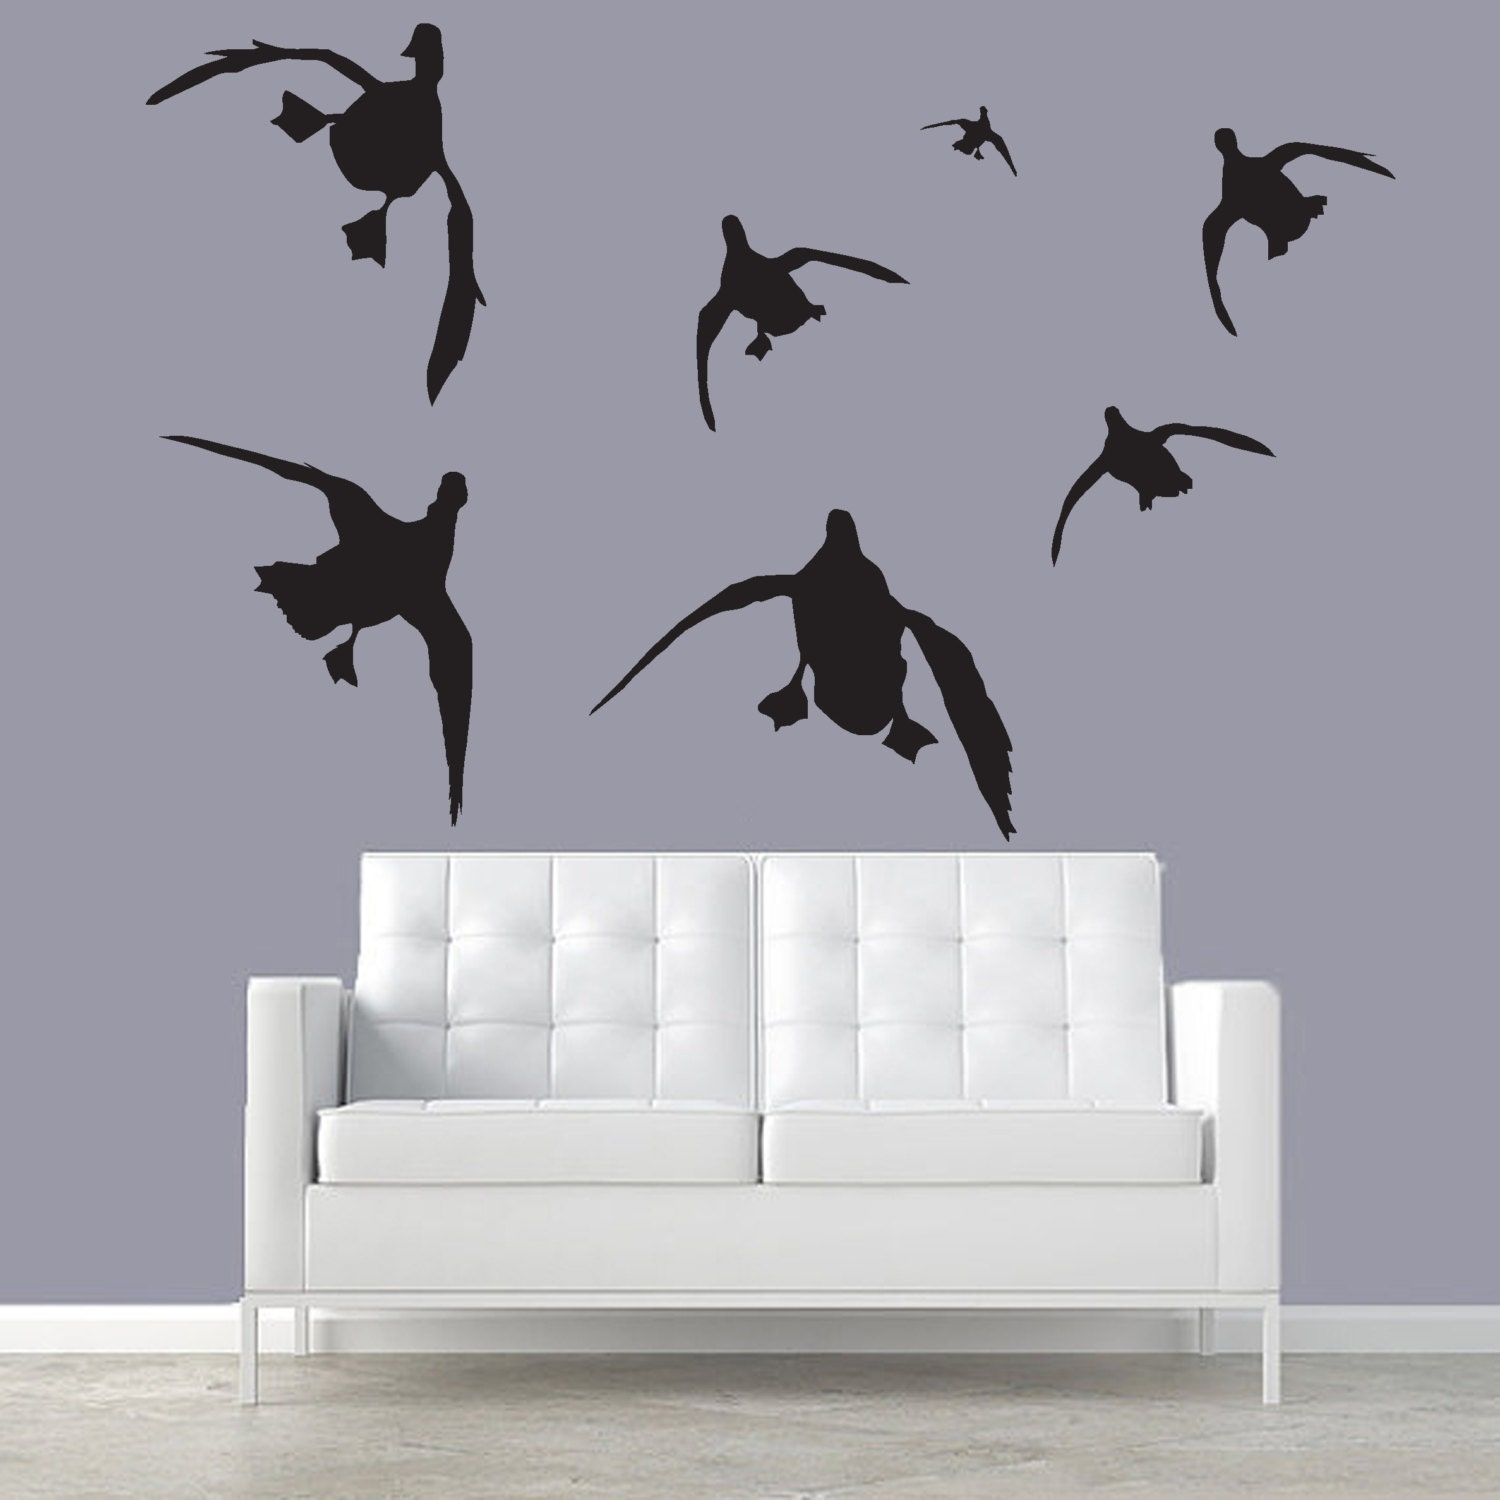 mallard wall decal silhouettes cupped mallard ducks living duck family wall decals fabric wall stickers eco wall